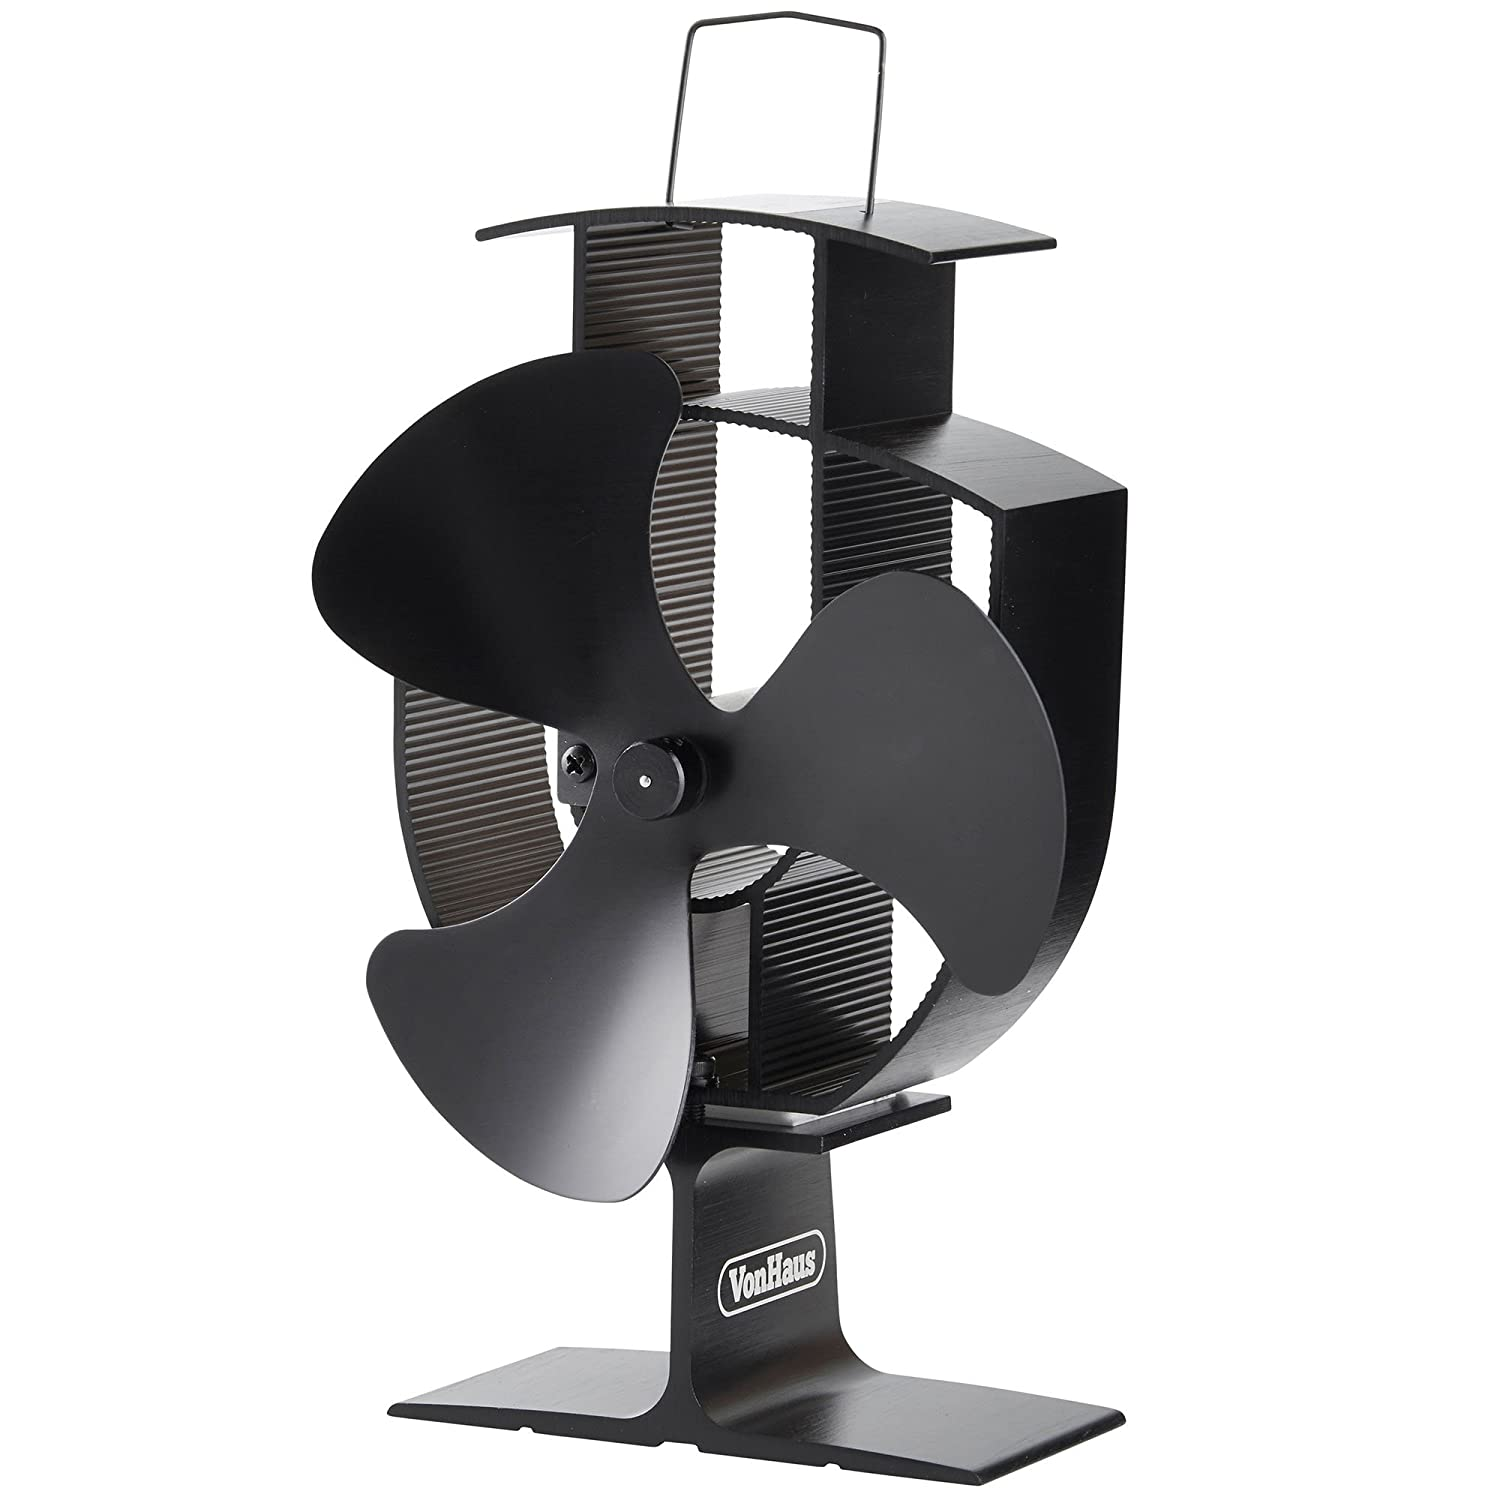 Amazon.com: VonHaus Wood Stove Eco Fan - Heat Powered Ultra Quiet Triple  Blade Fireplace Blower Fan for Efficient Heat Distribution - Black: Home &  Kitchen - Amazon.com: VonHaus Wood Stove Eco Fan - Heat Powered Ultra Quiet